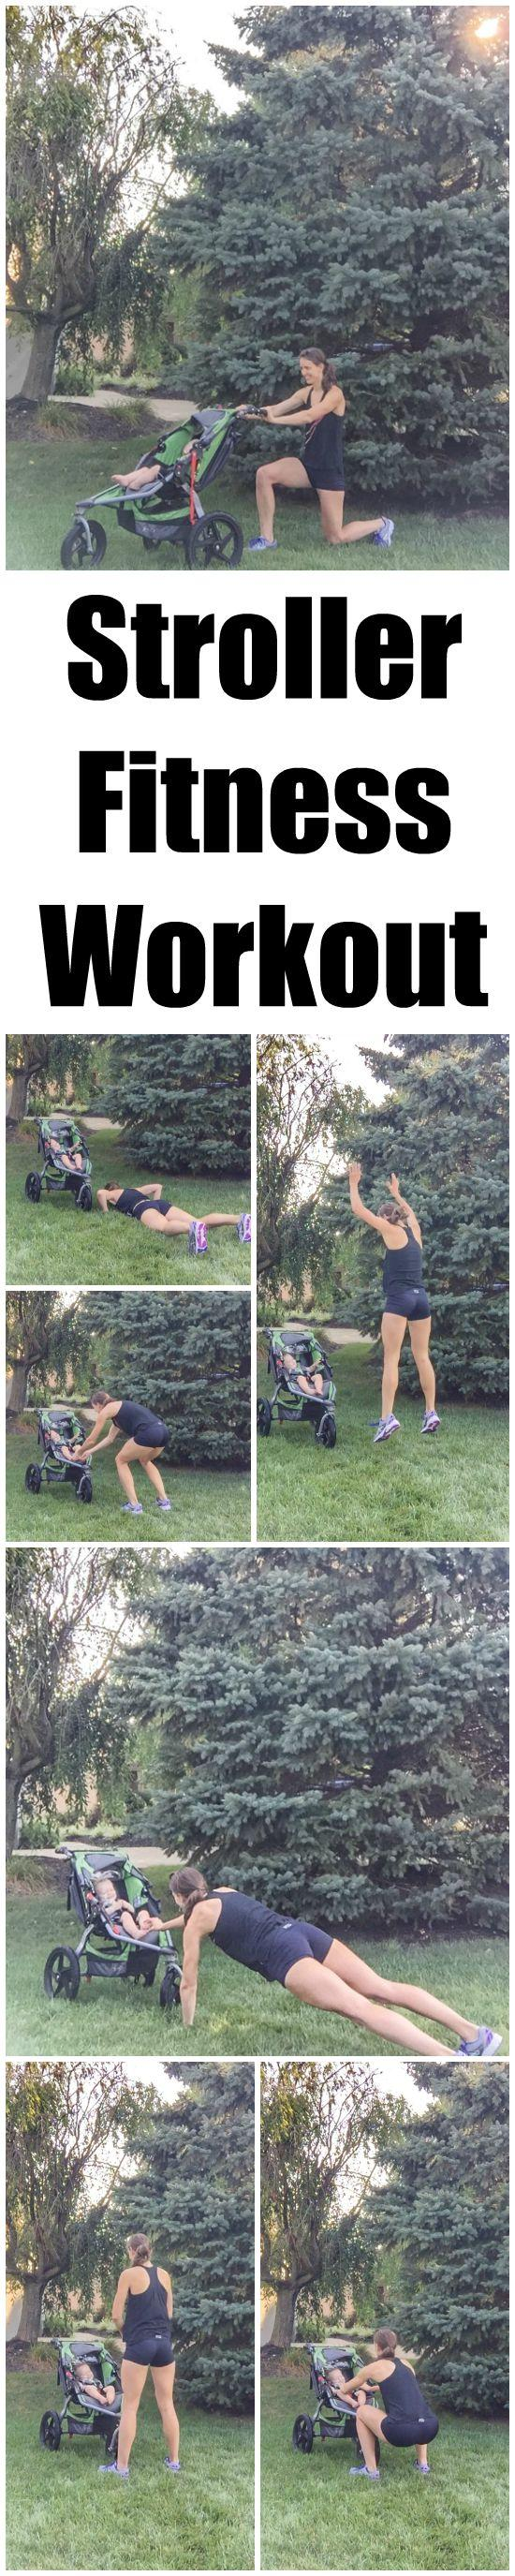 This Stroller Workout is a fun way to break up your next walk or run by adding short fitness breaks that include lunges, squats, burpees and planks. Fun for you AND baby!